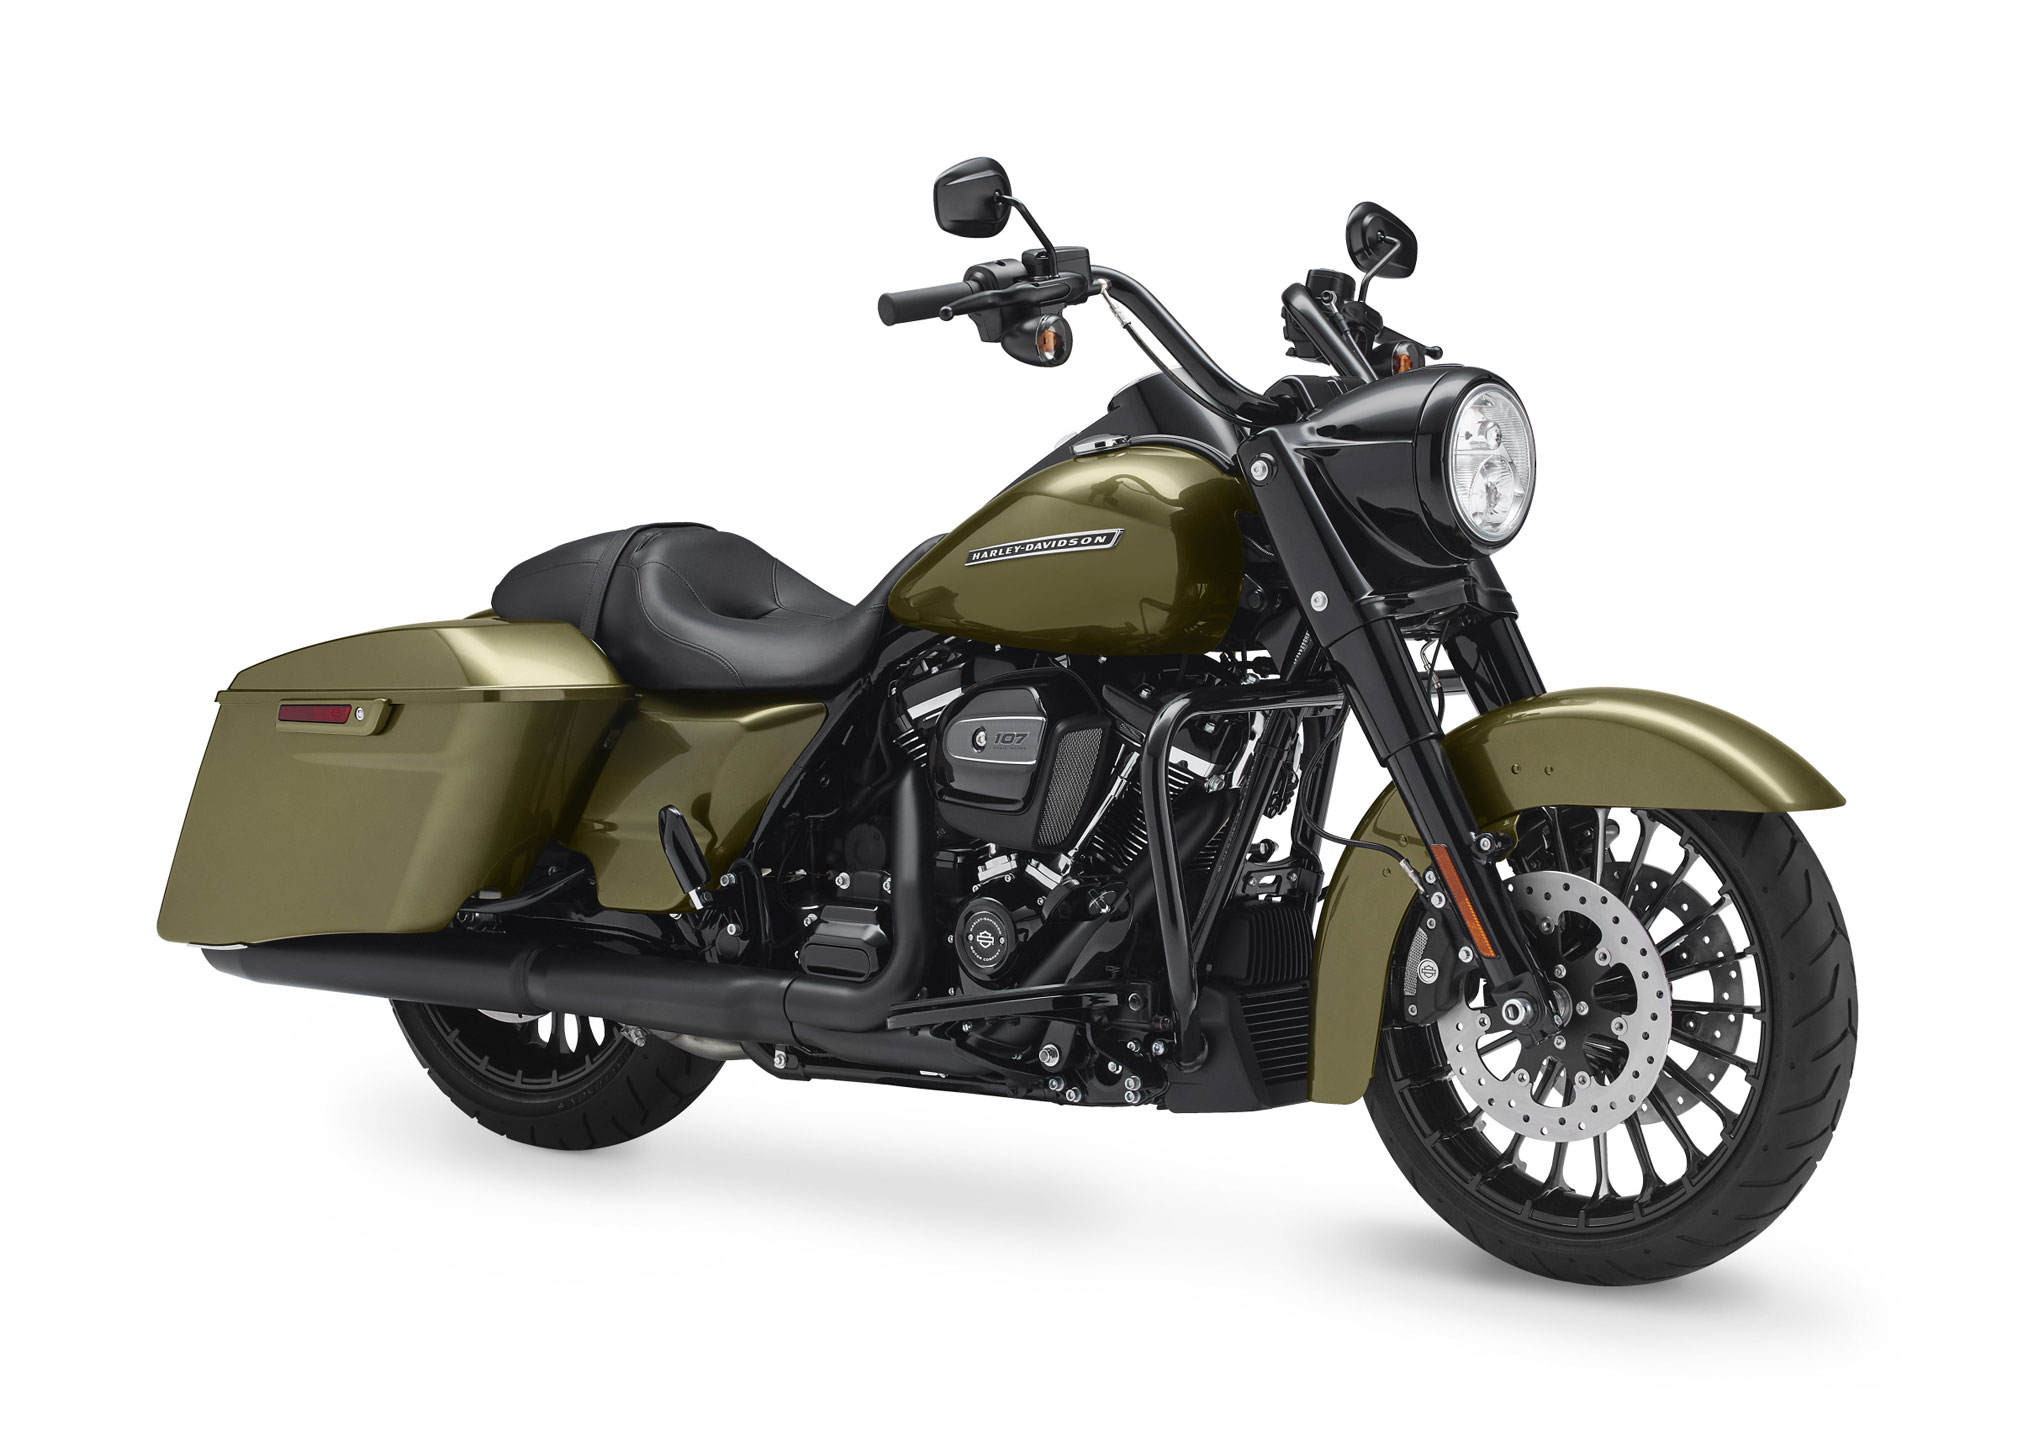 2018 harley davidson road king special review totalmotorcycle. Black Bedroom Furniture Sets. Home Design Ideas